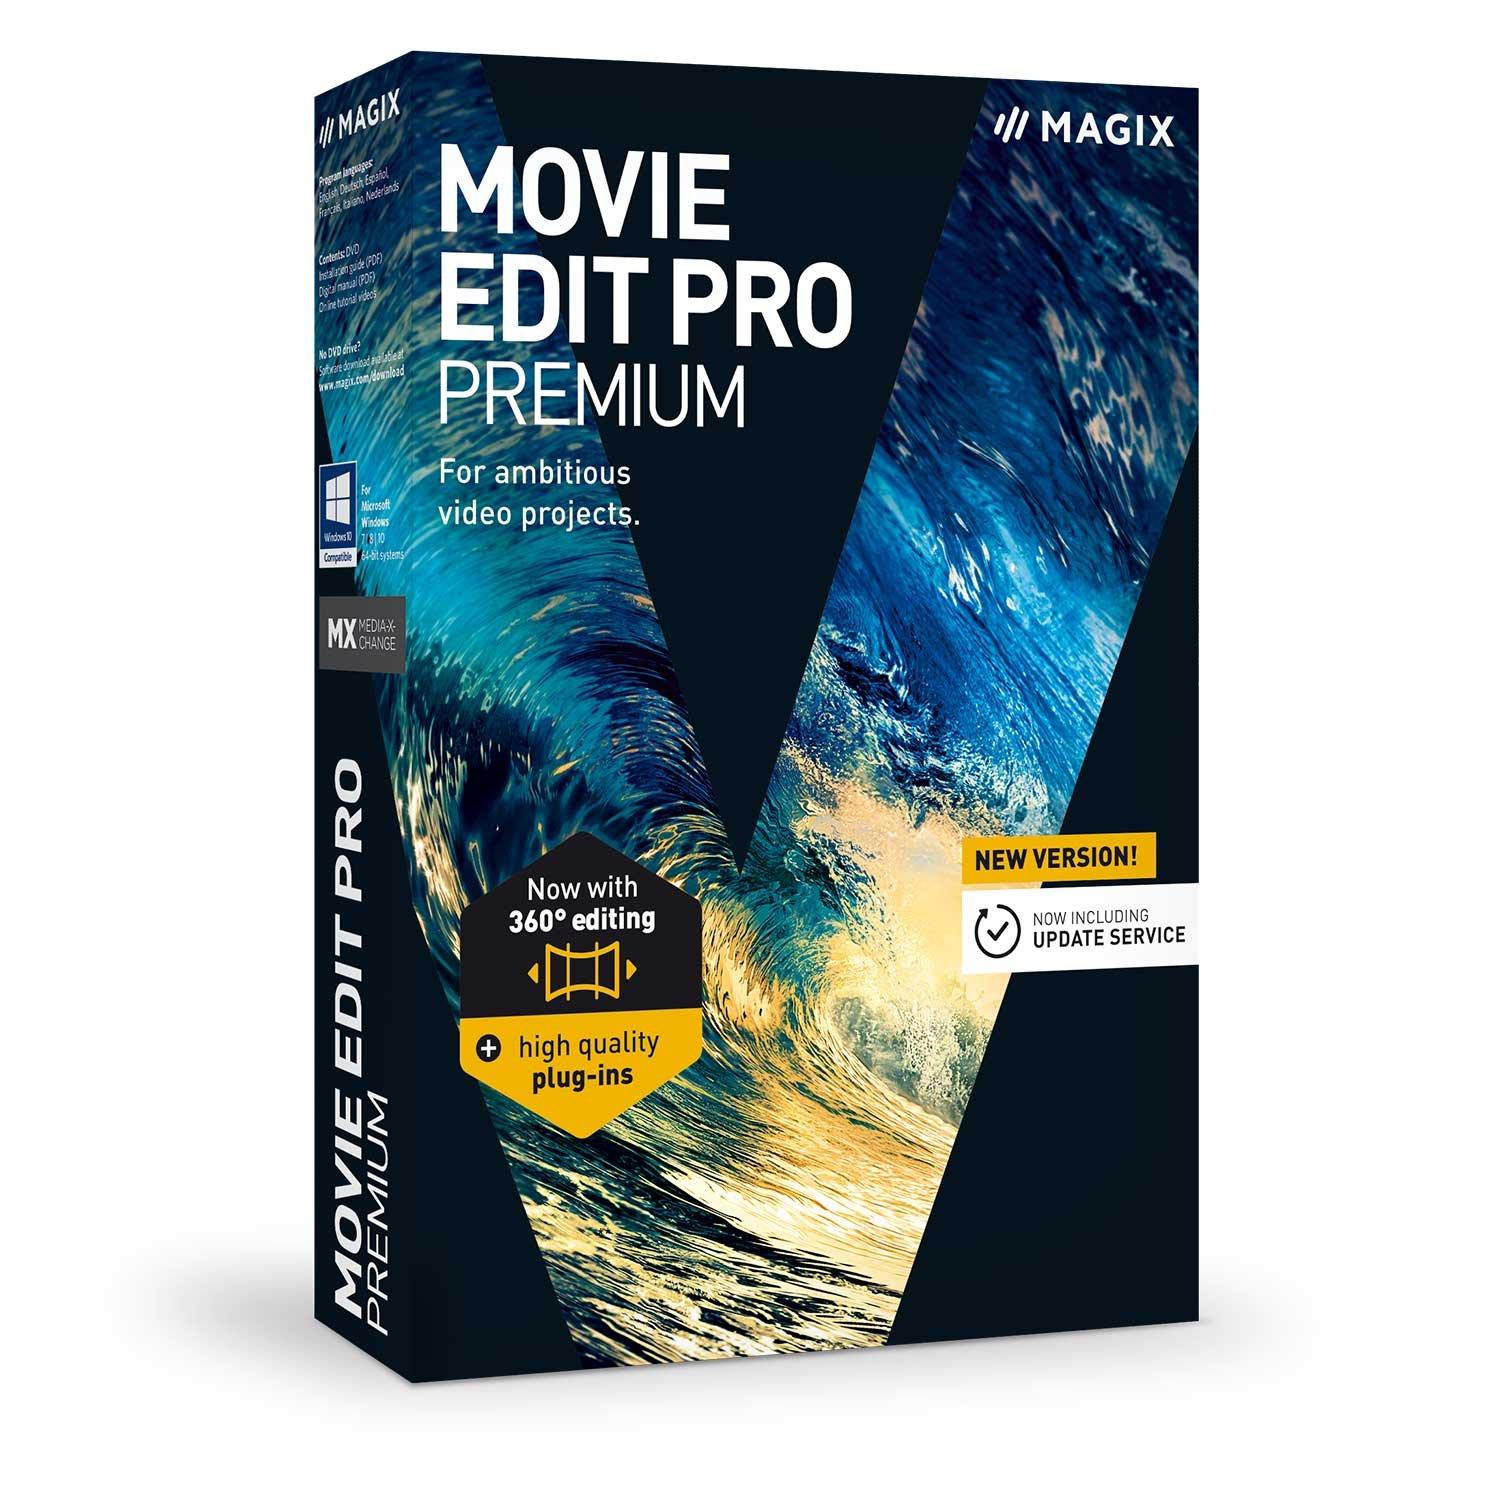 MAGIX Movie Edit Pro Premium 2018 17.0.1.128